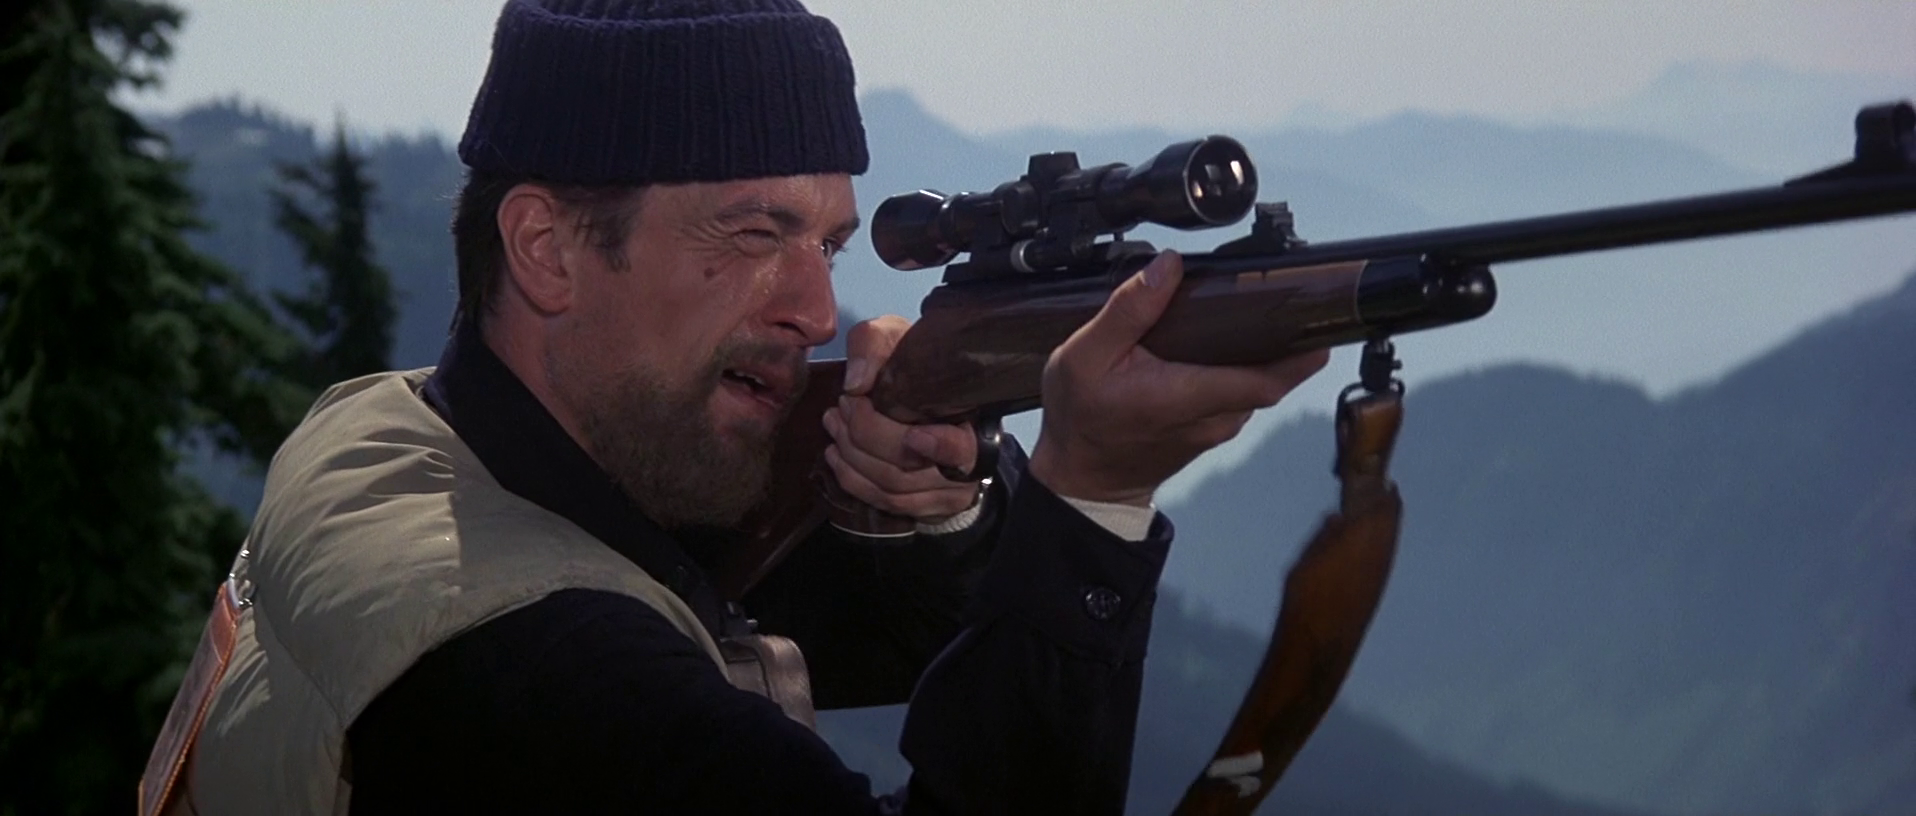 The Deer Hunter - Robert De Niro